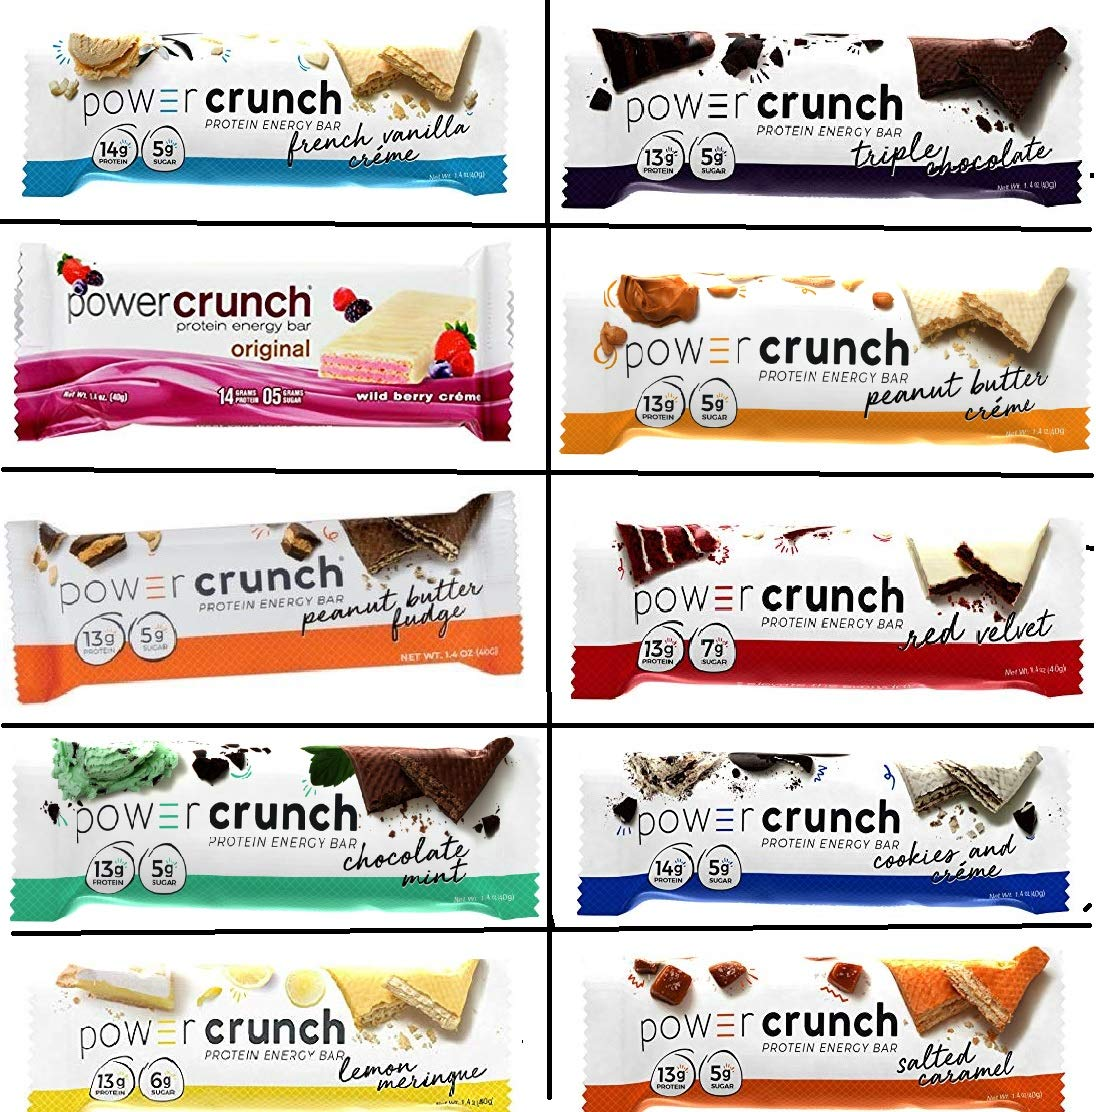 Power Crunch Original Protein Bars, Variety Pack. (Bast Variety Pack of all 10 Flavors, 20 bars) by Power Crunch